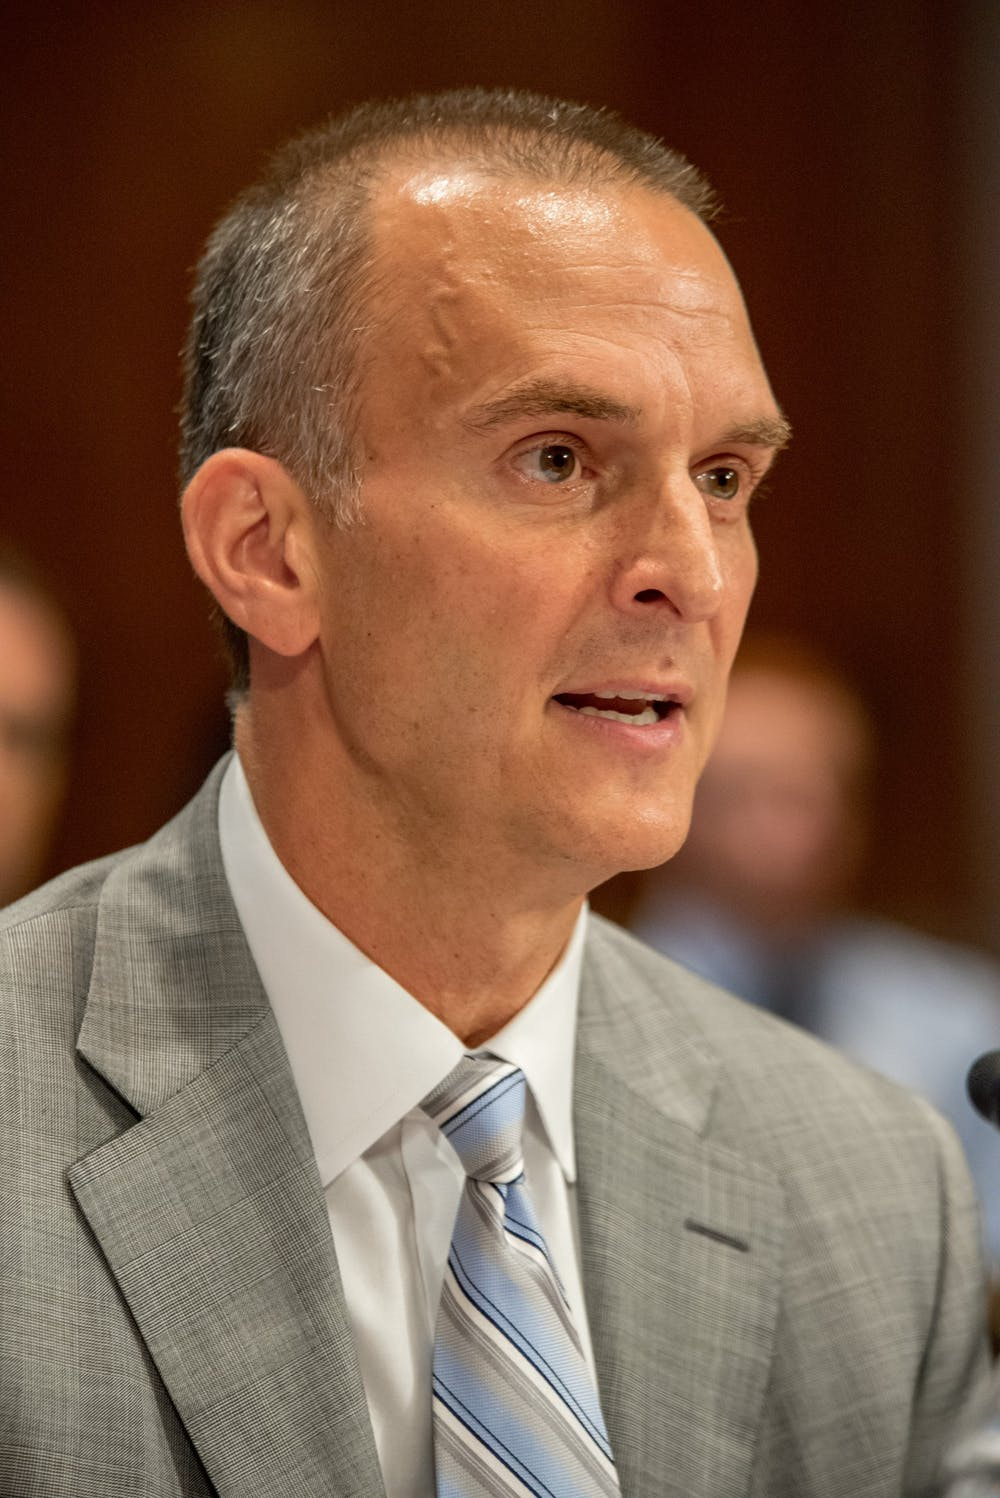 <p>Travis T. Tygart at the Helsinki Commission Hearing in Washington D.C. on Friday, July 27, 2018. Photo courtesy of Adam Woullard.</p>